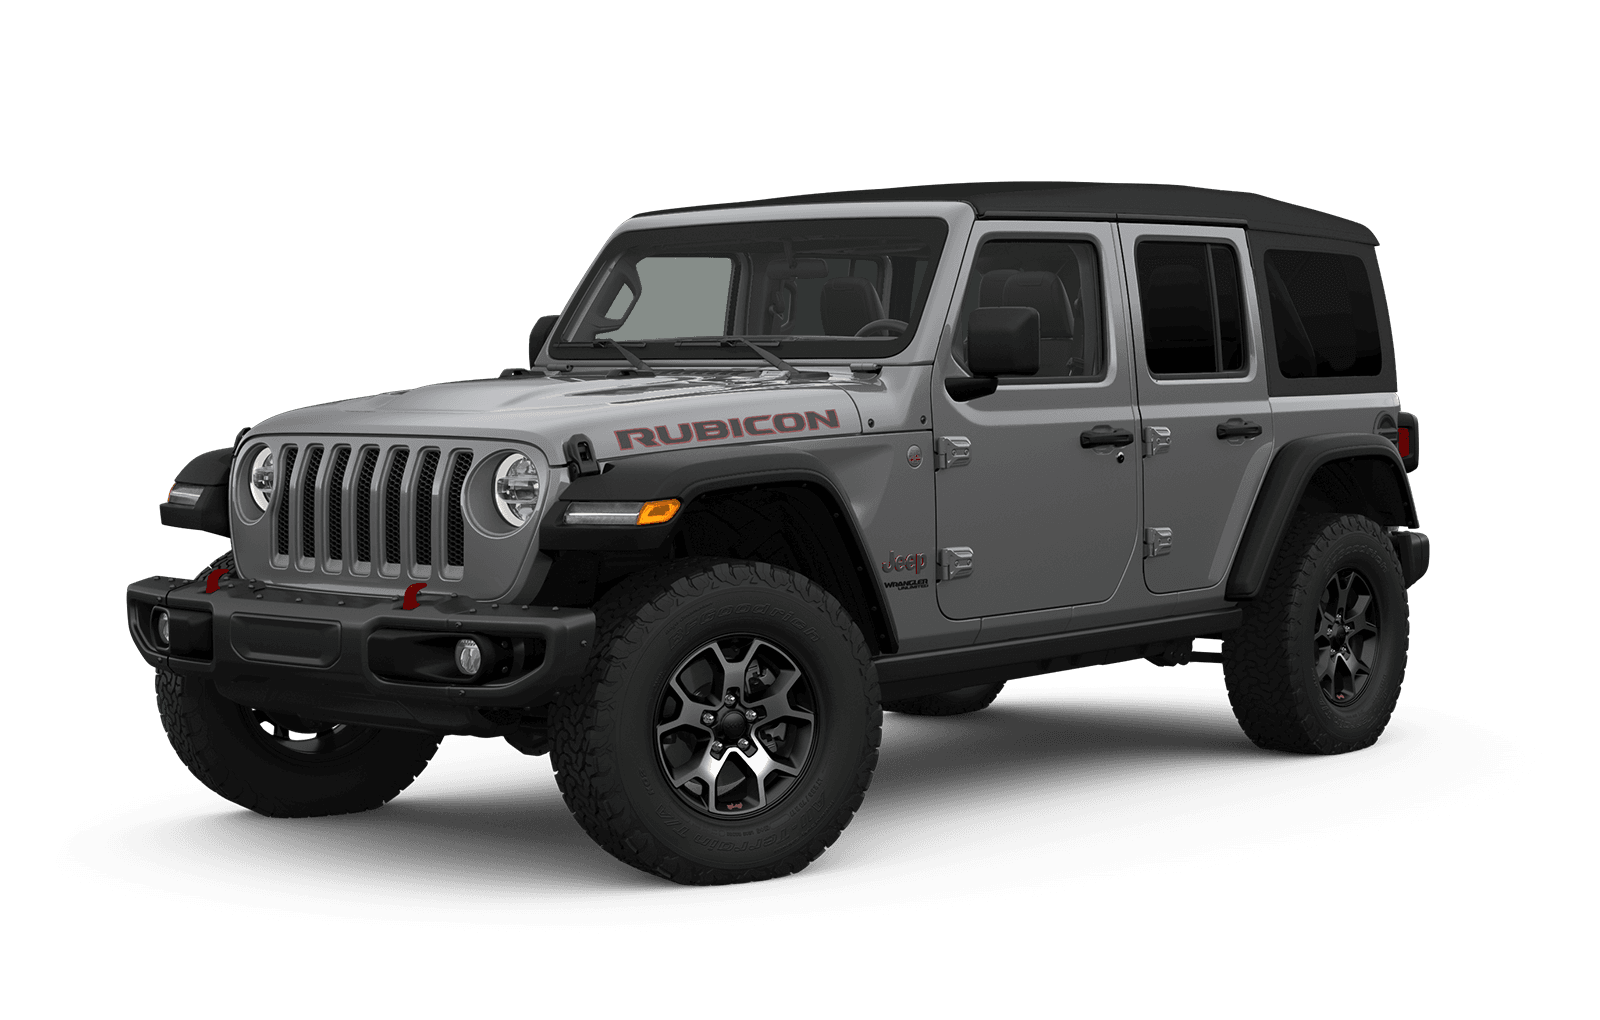 2019 Jeep Wrangler Full View in Medium Grey with Wheels